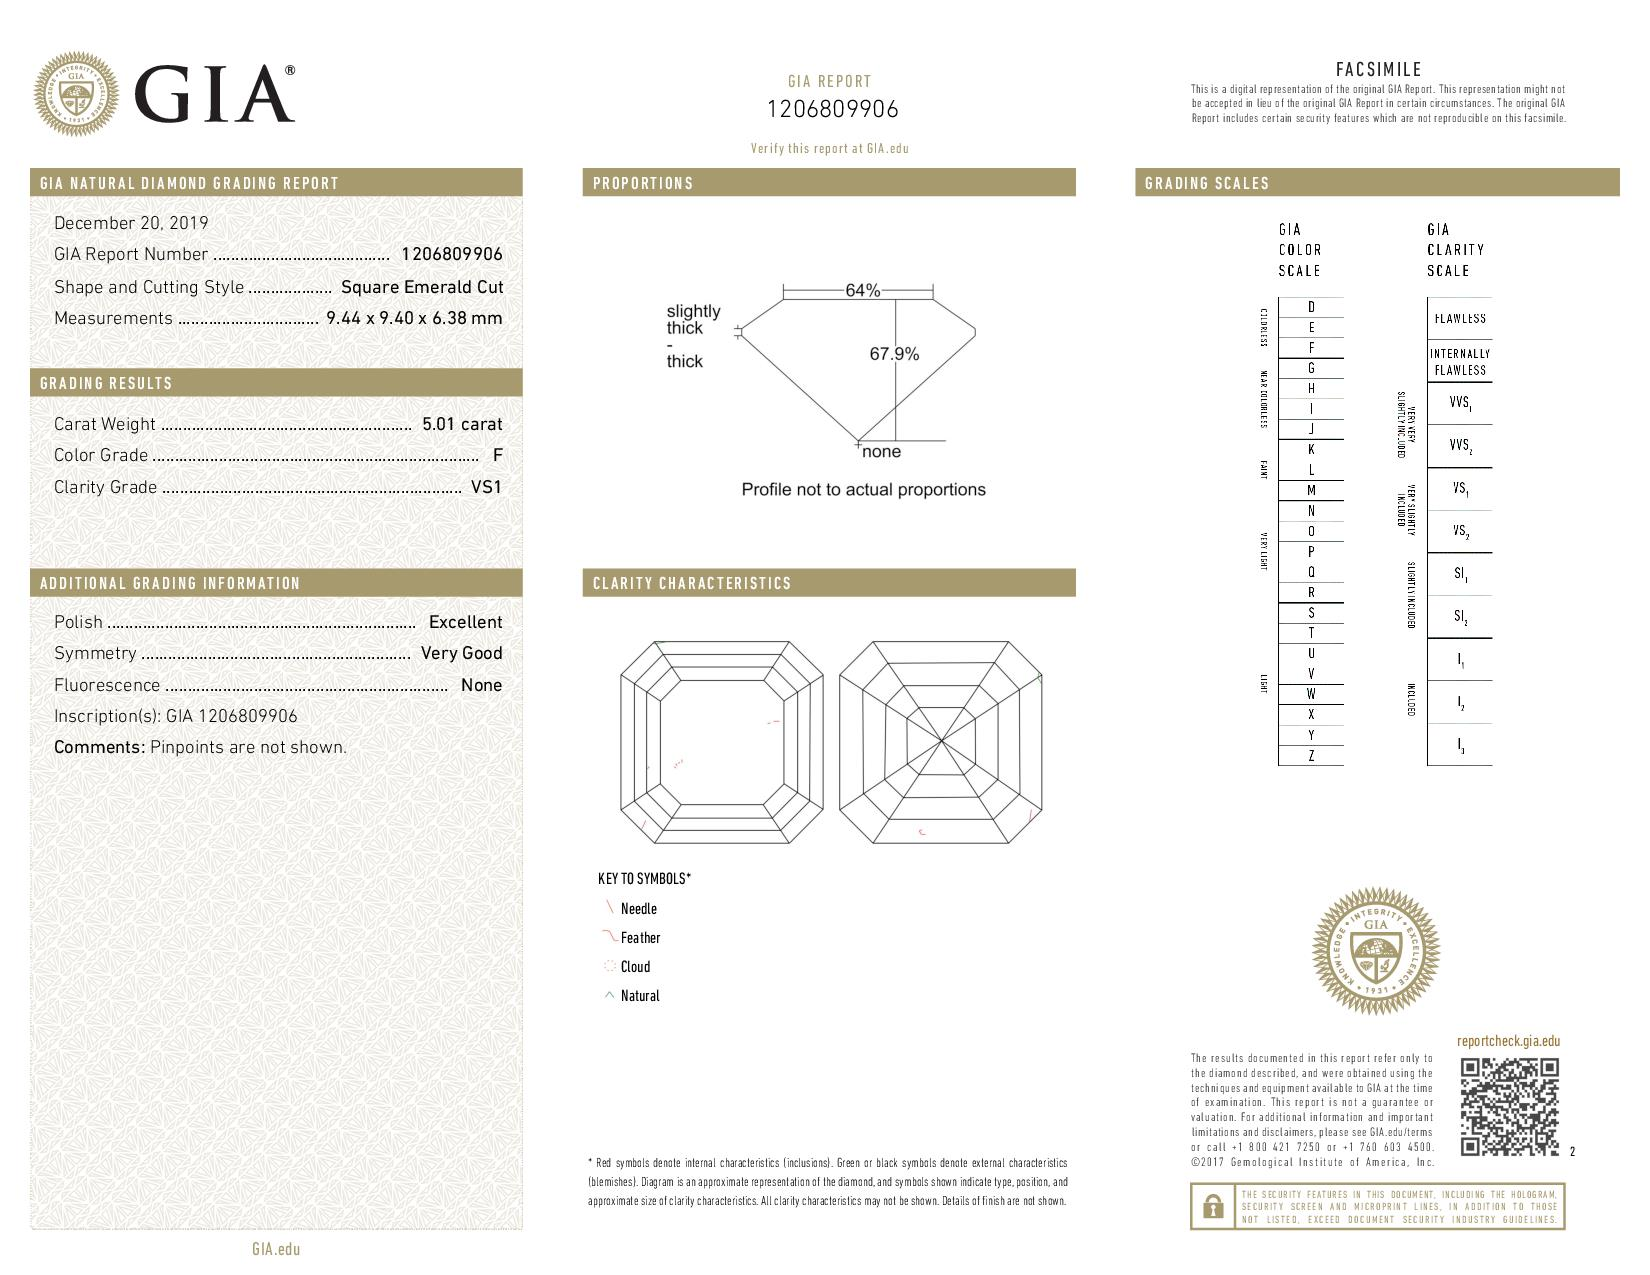 This is a 5.01 carat asscher shape, F color, VS1 clarity natural diamond accompanied by a GIA grading report.